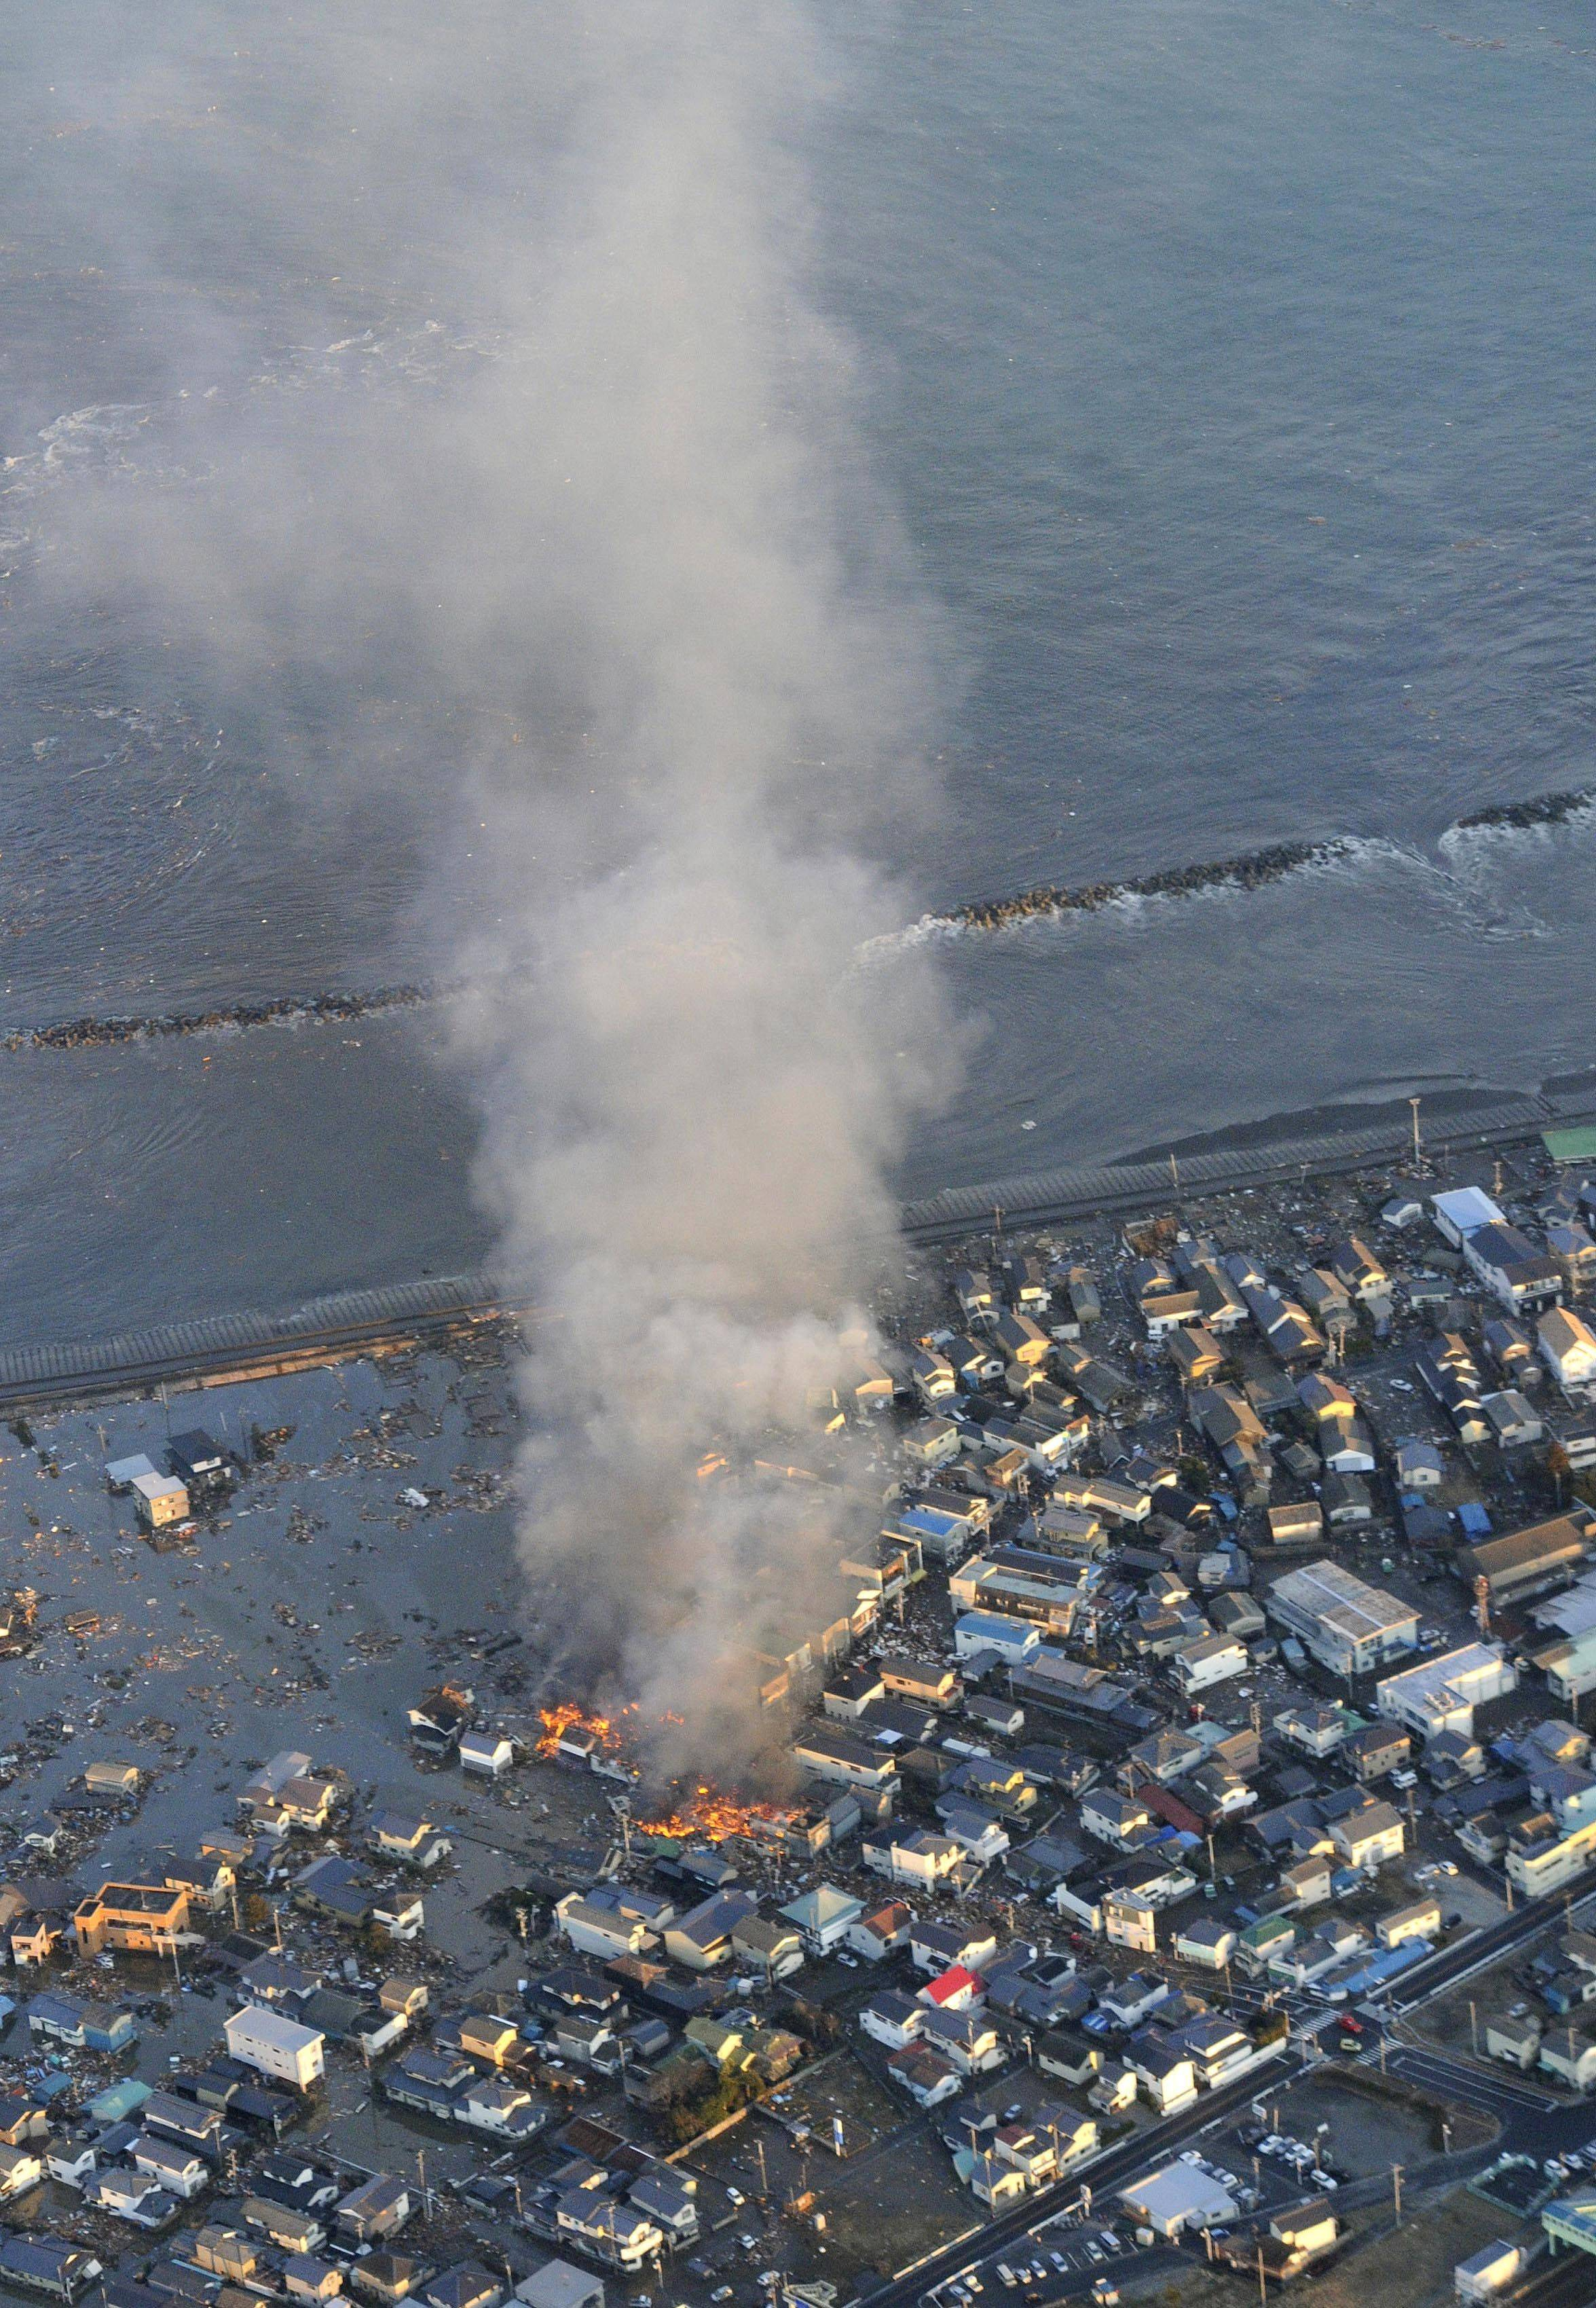 Fire smokes billow from residences as a coastal area is flooded by waters after a tsunami in Iwaki, Fukushima prefecture (state), Japan.